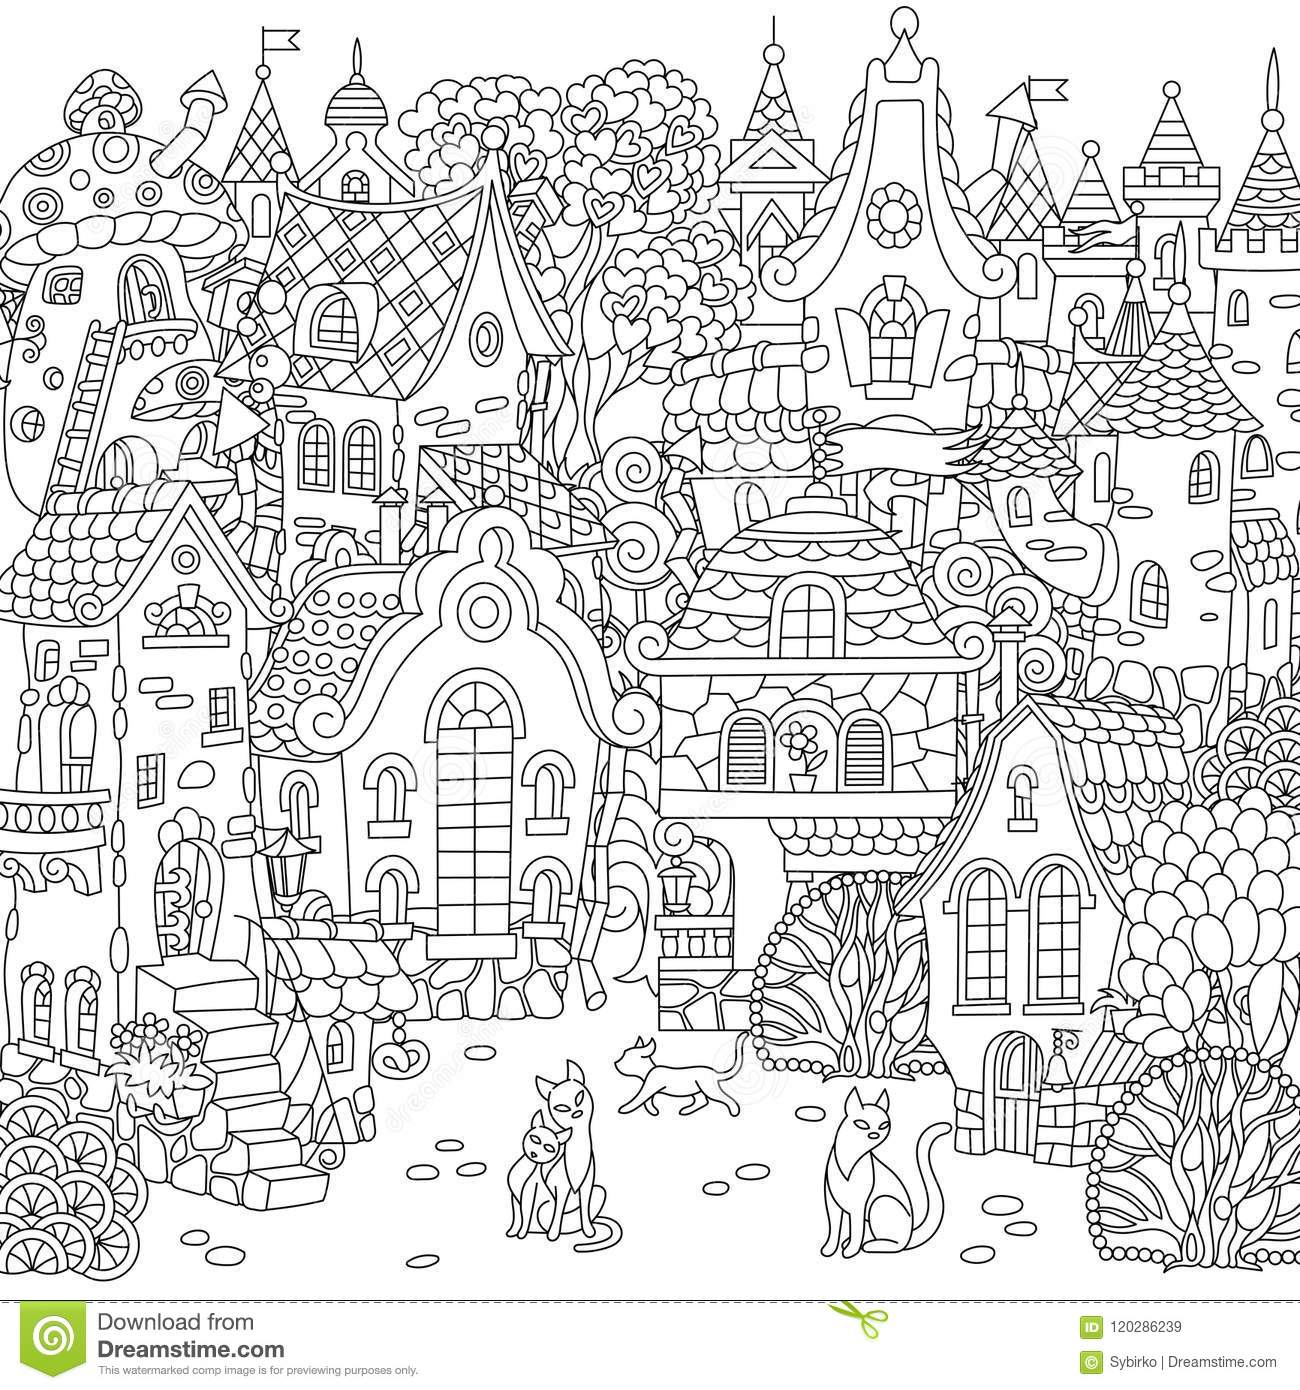 Fairy tale town city landscape fantasy cityscape with vintage houses and cats coloring page colouring picture coloring book freehand sketch drawing